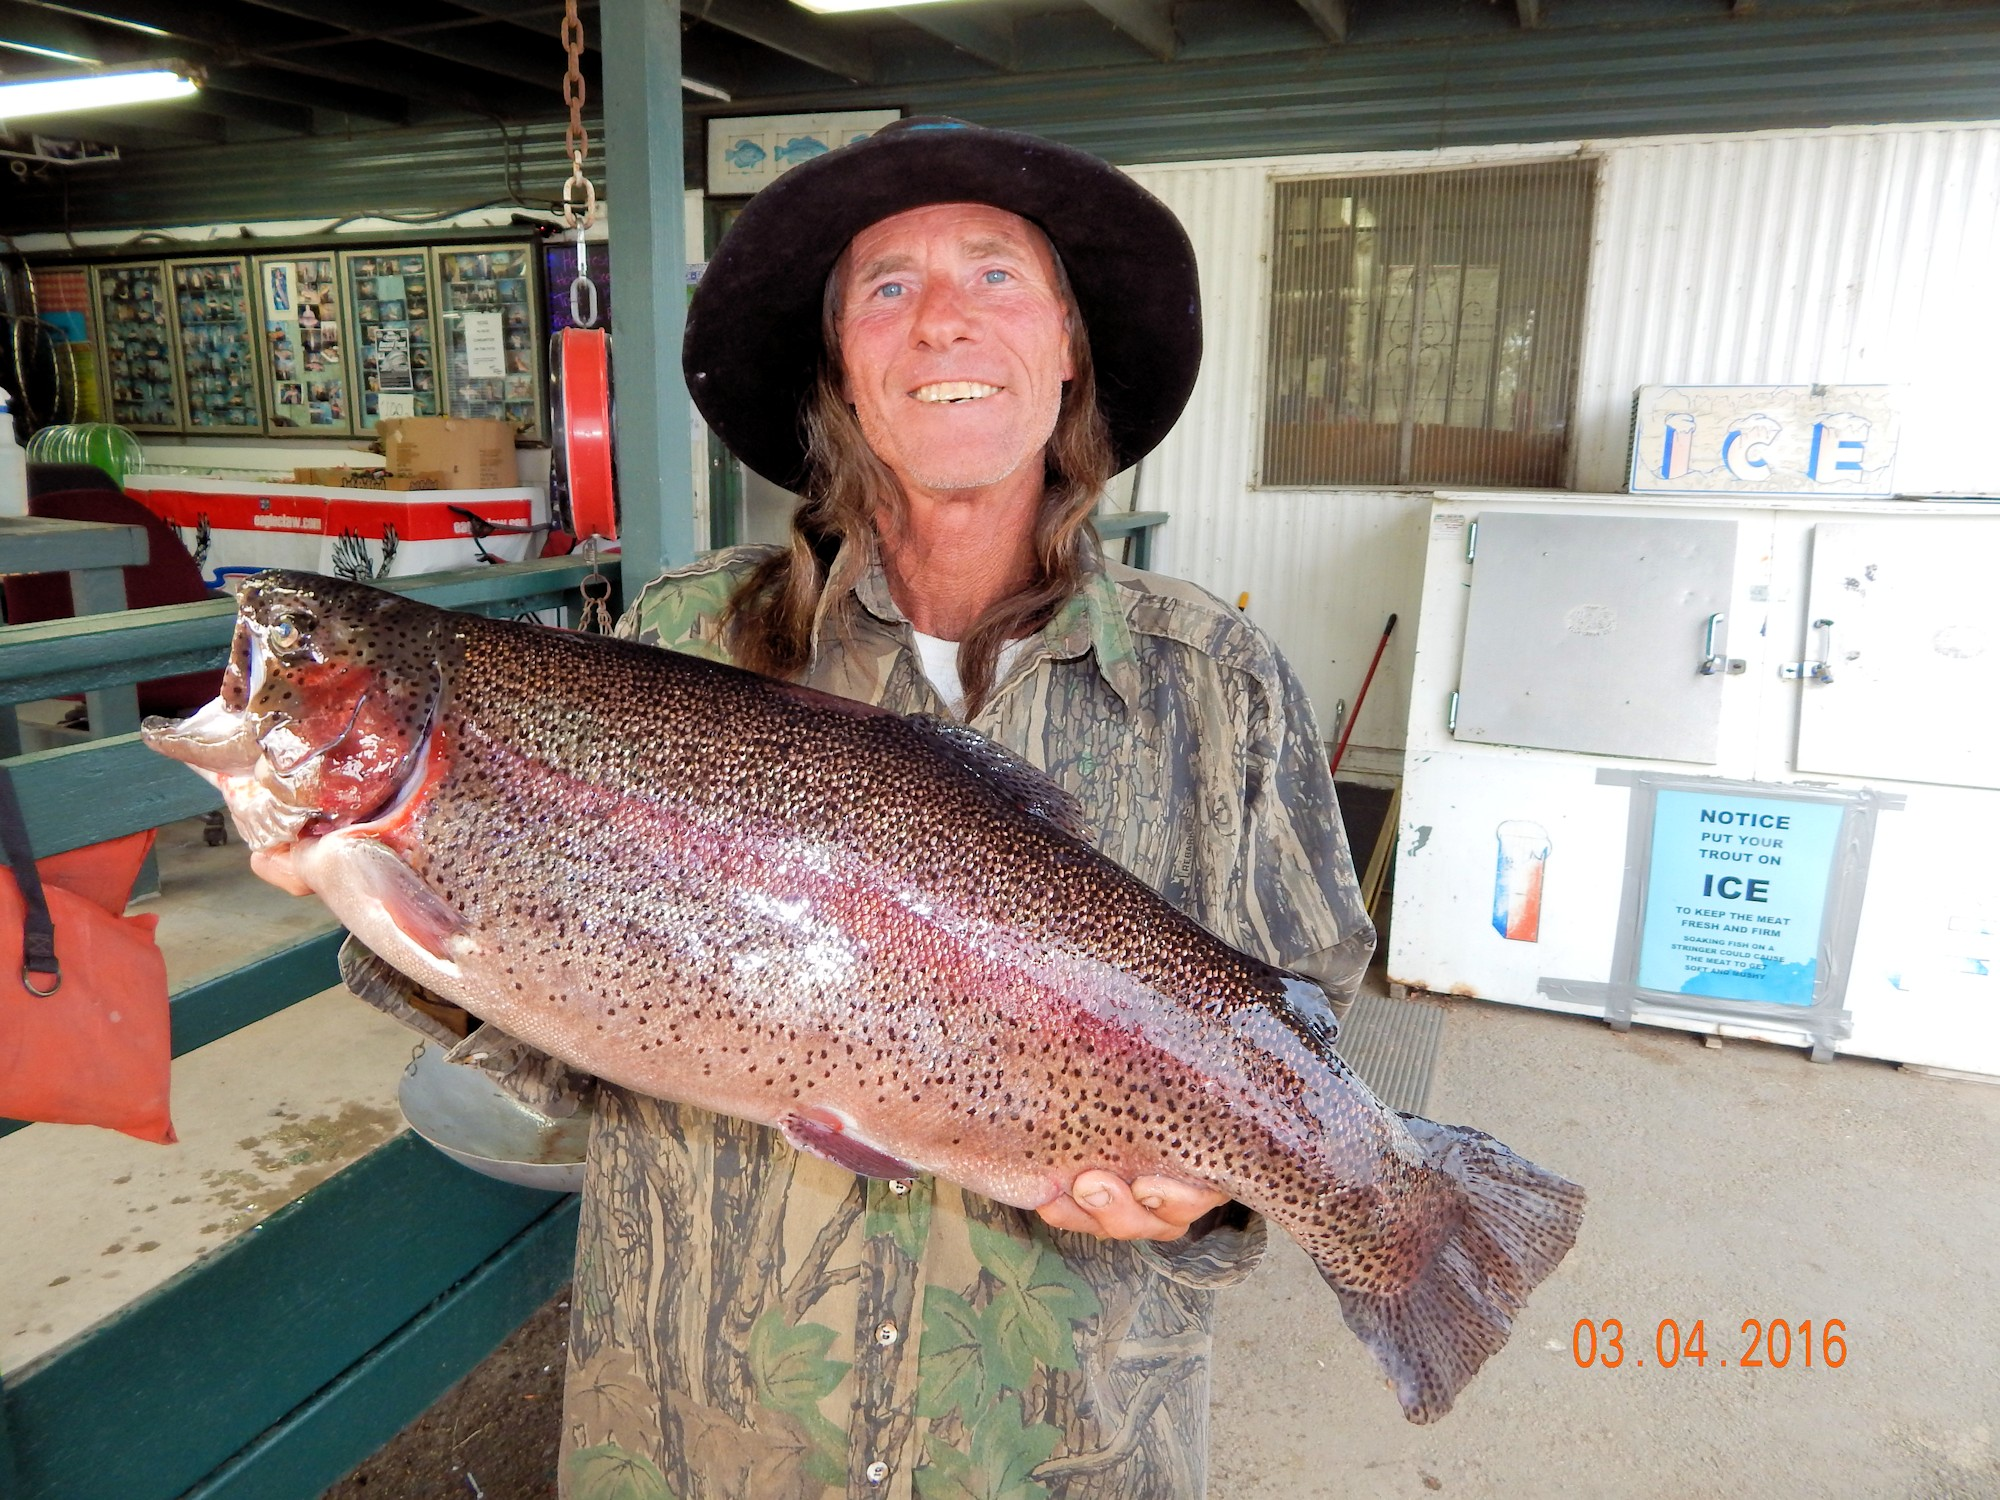 David Halfacre of West Covina caught a 13 pound rainbow trout